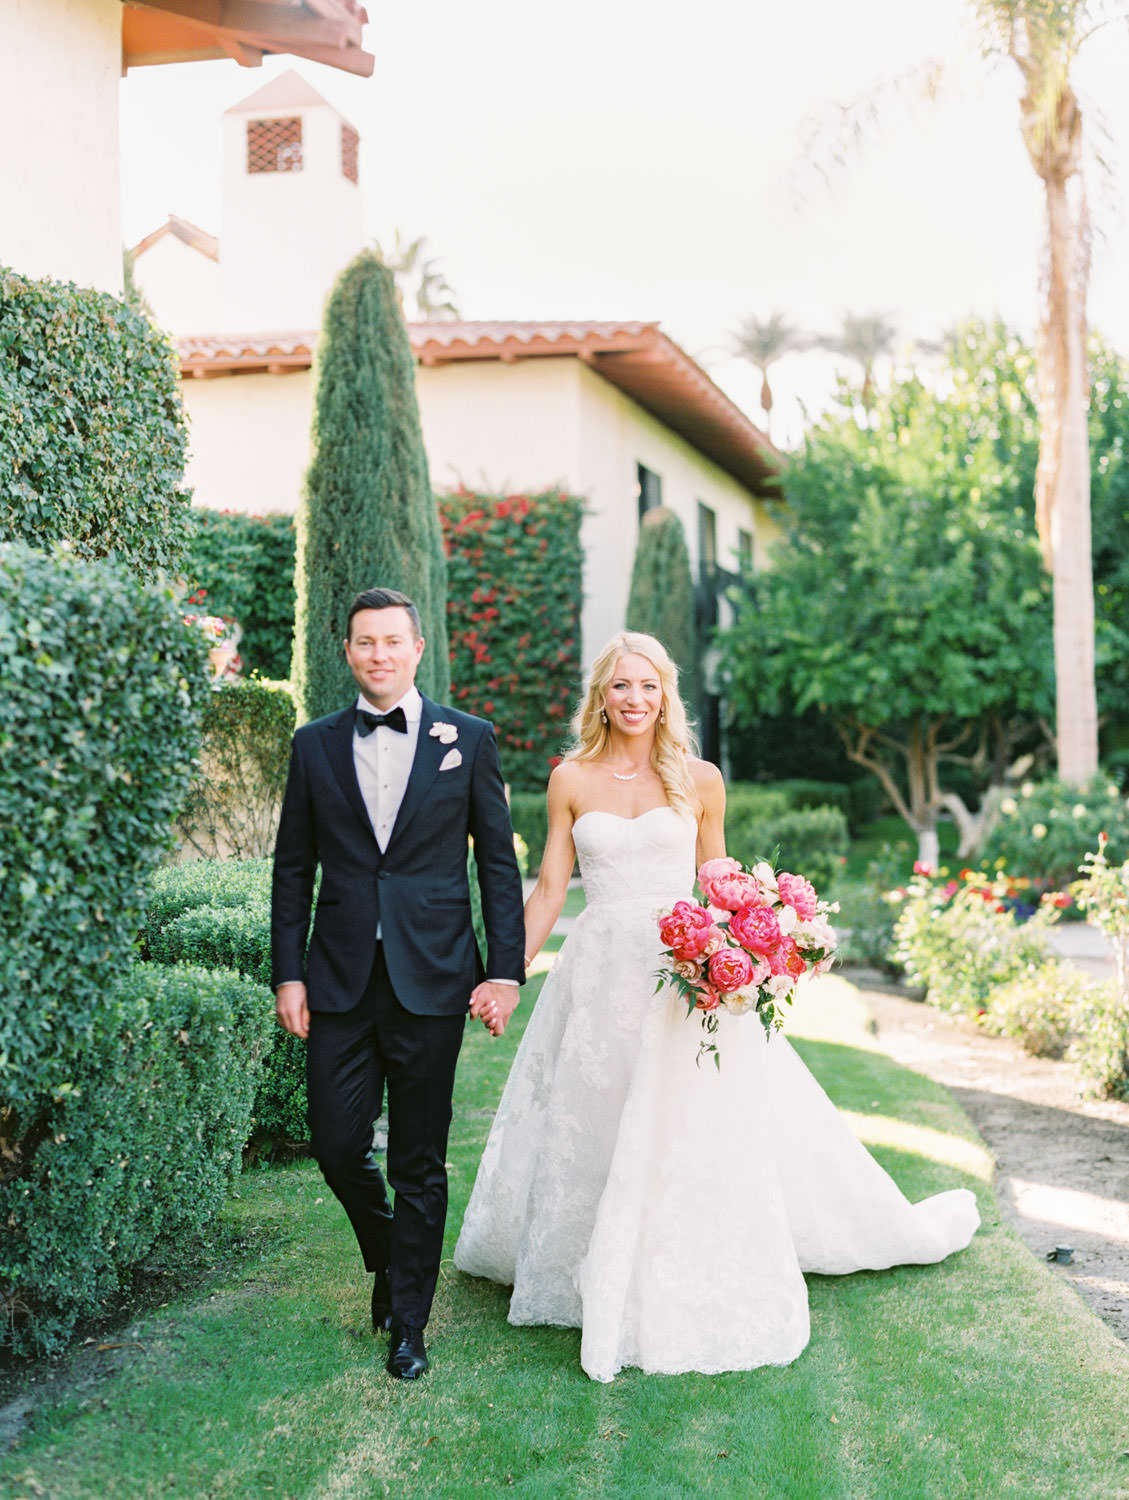 Cypress tree background for portrait of the Groom in black tux and the bride wearing a lace Watters sweetheart gown with large bridal bouquet of pink tones with peonies and roses. Miramonte Resort wedding. Film photography by Cavin Elizabeth.